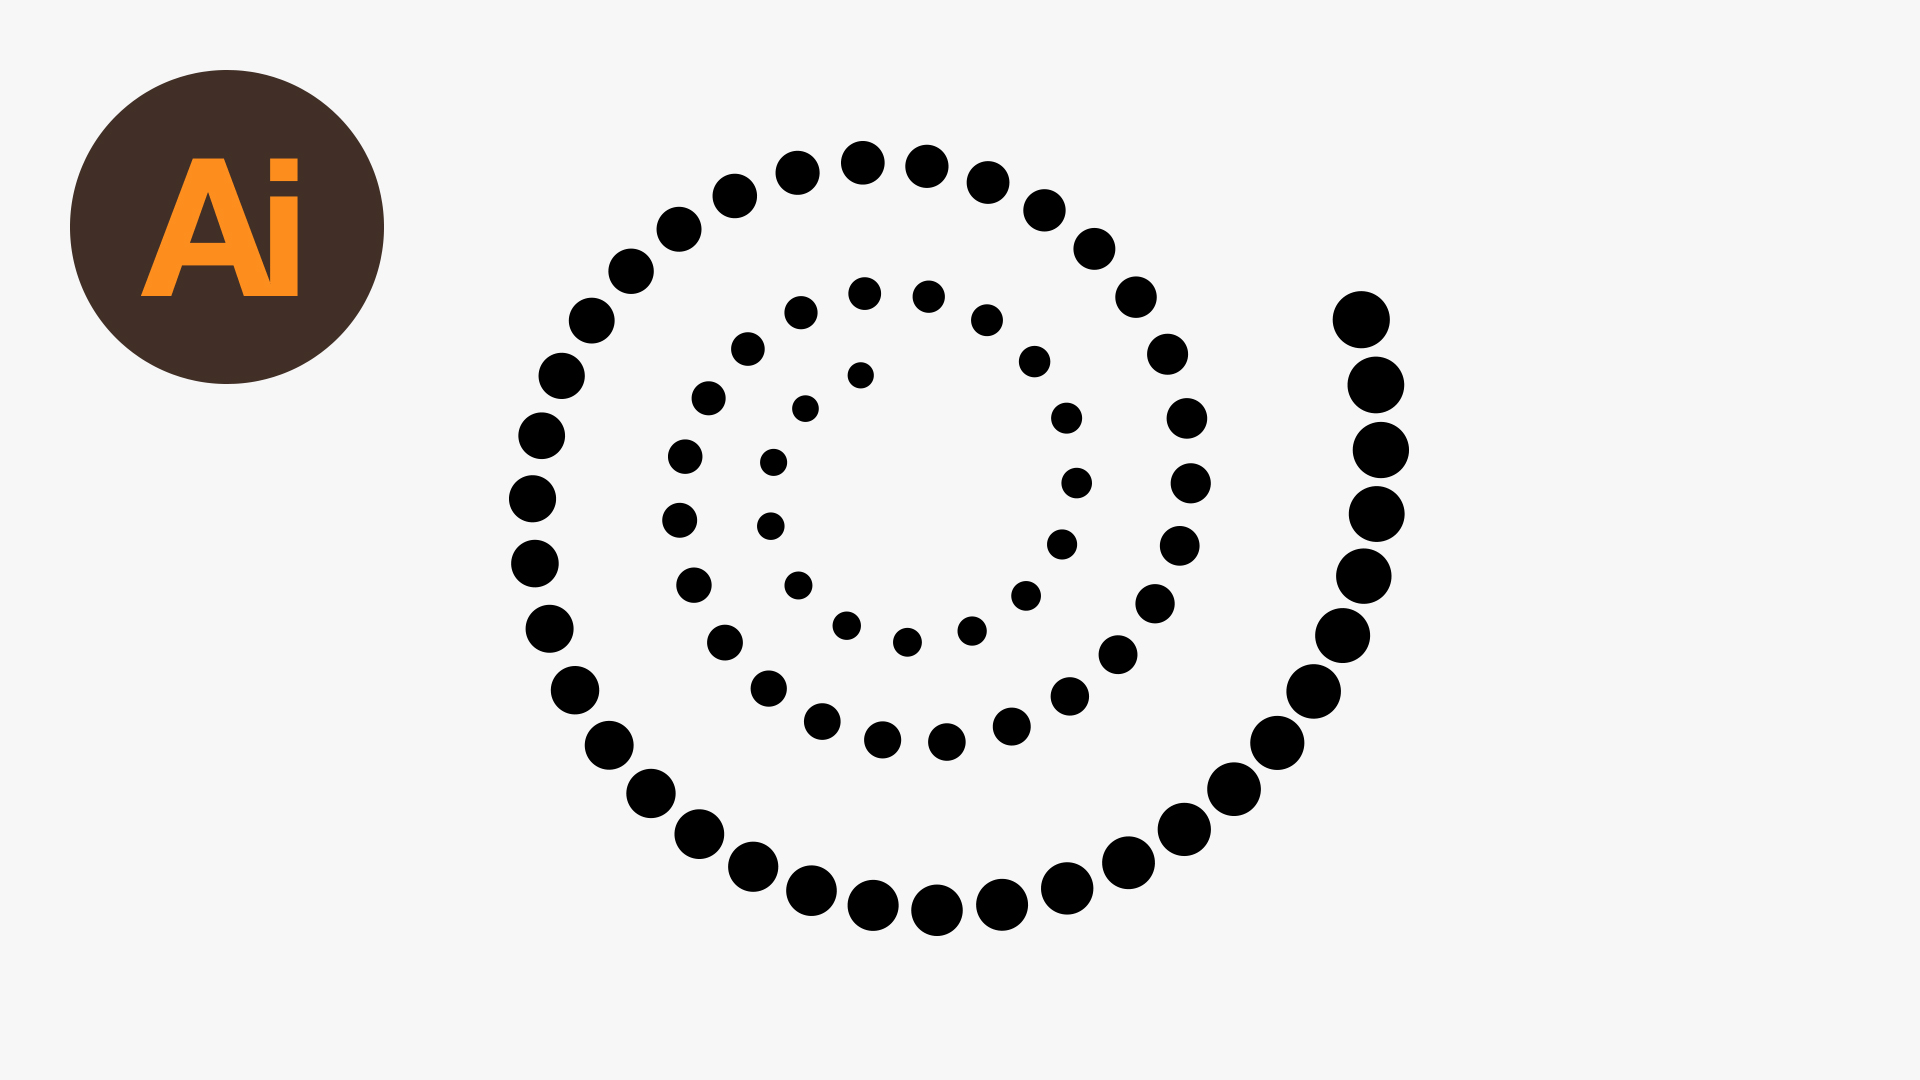 Create Dots on Spiral Path in Illustrator